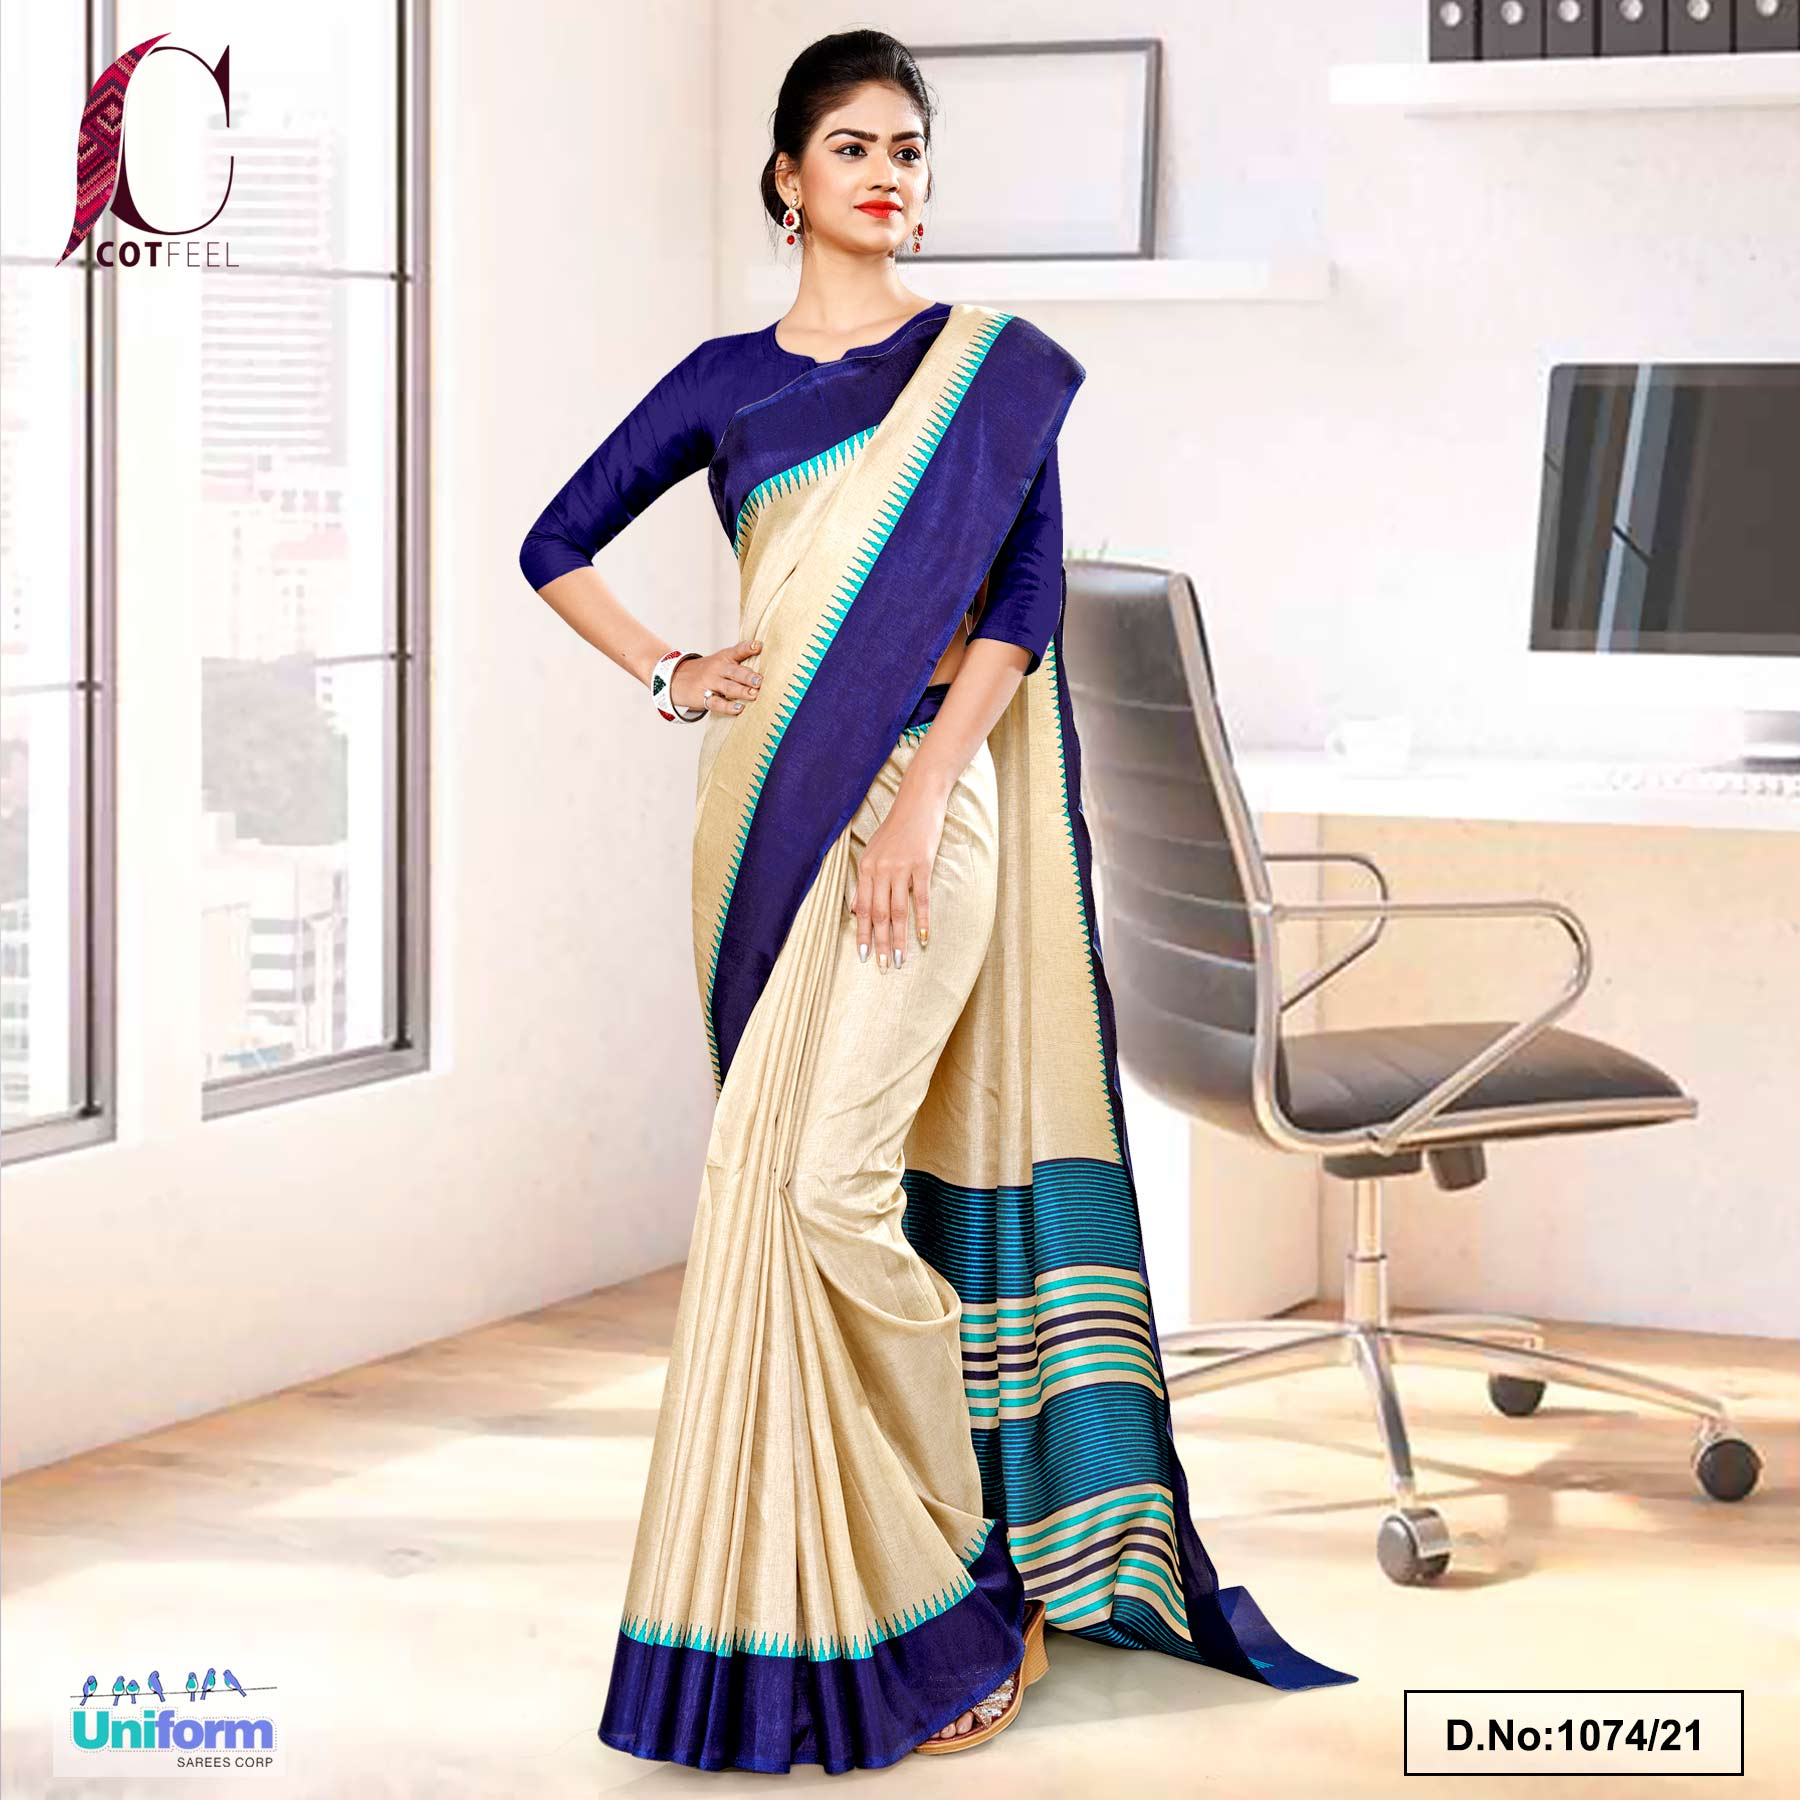 Beige Navy Blue Gala Border Premium Polycotton CotFeel Saree for Institution Uniform Sarees